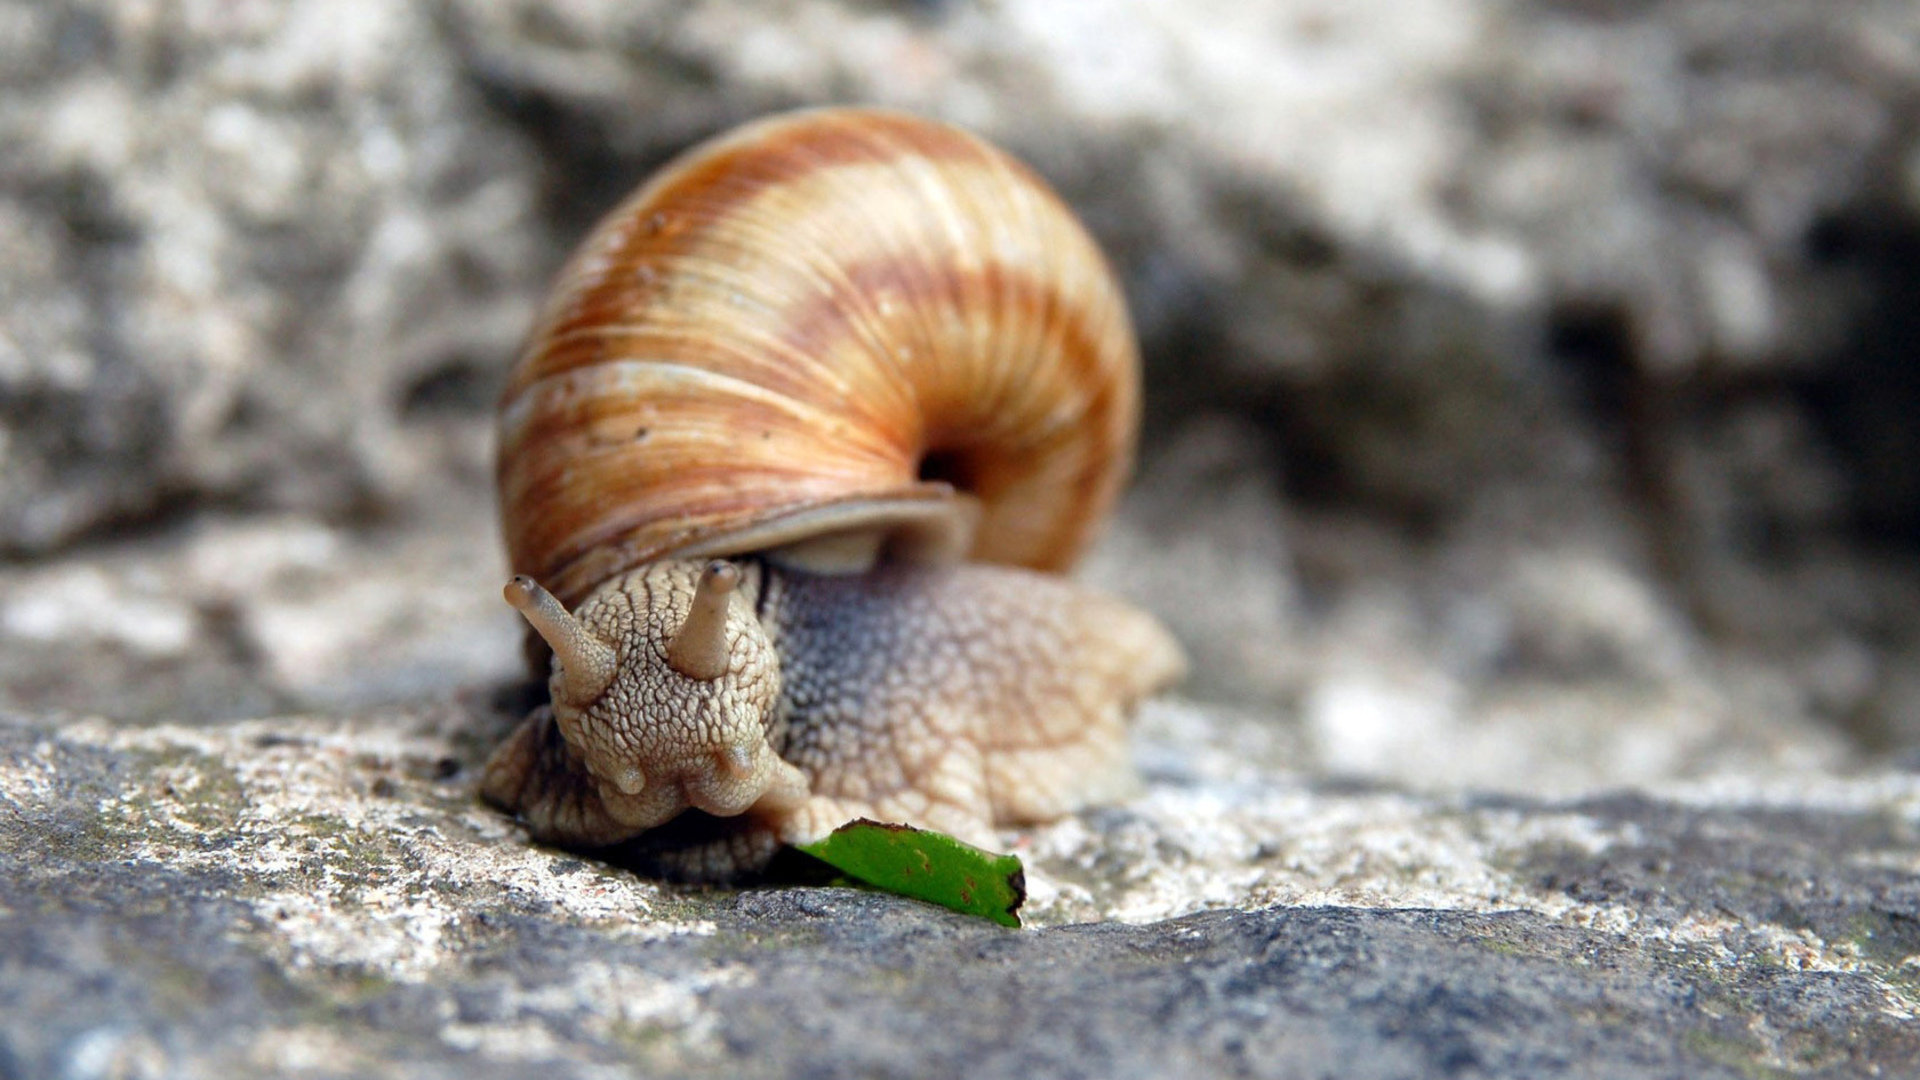 Free Snail high quality wallpaper ID:198824 for hd 1920x1080 computer